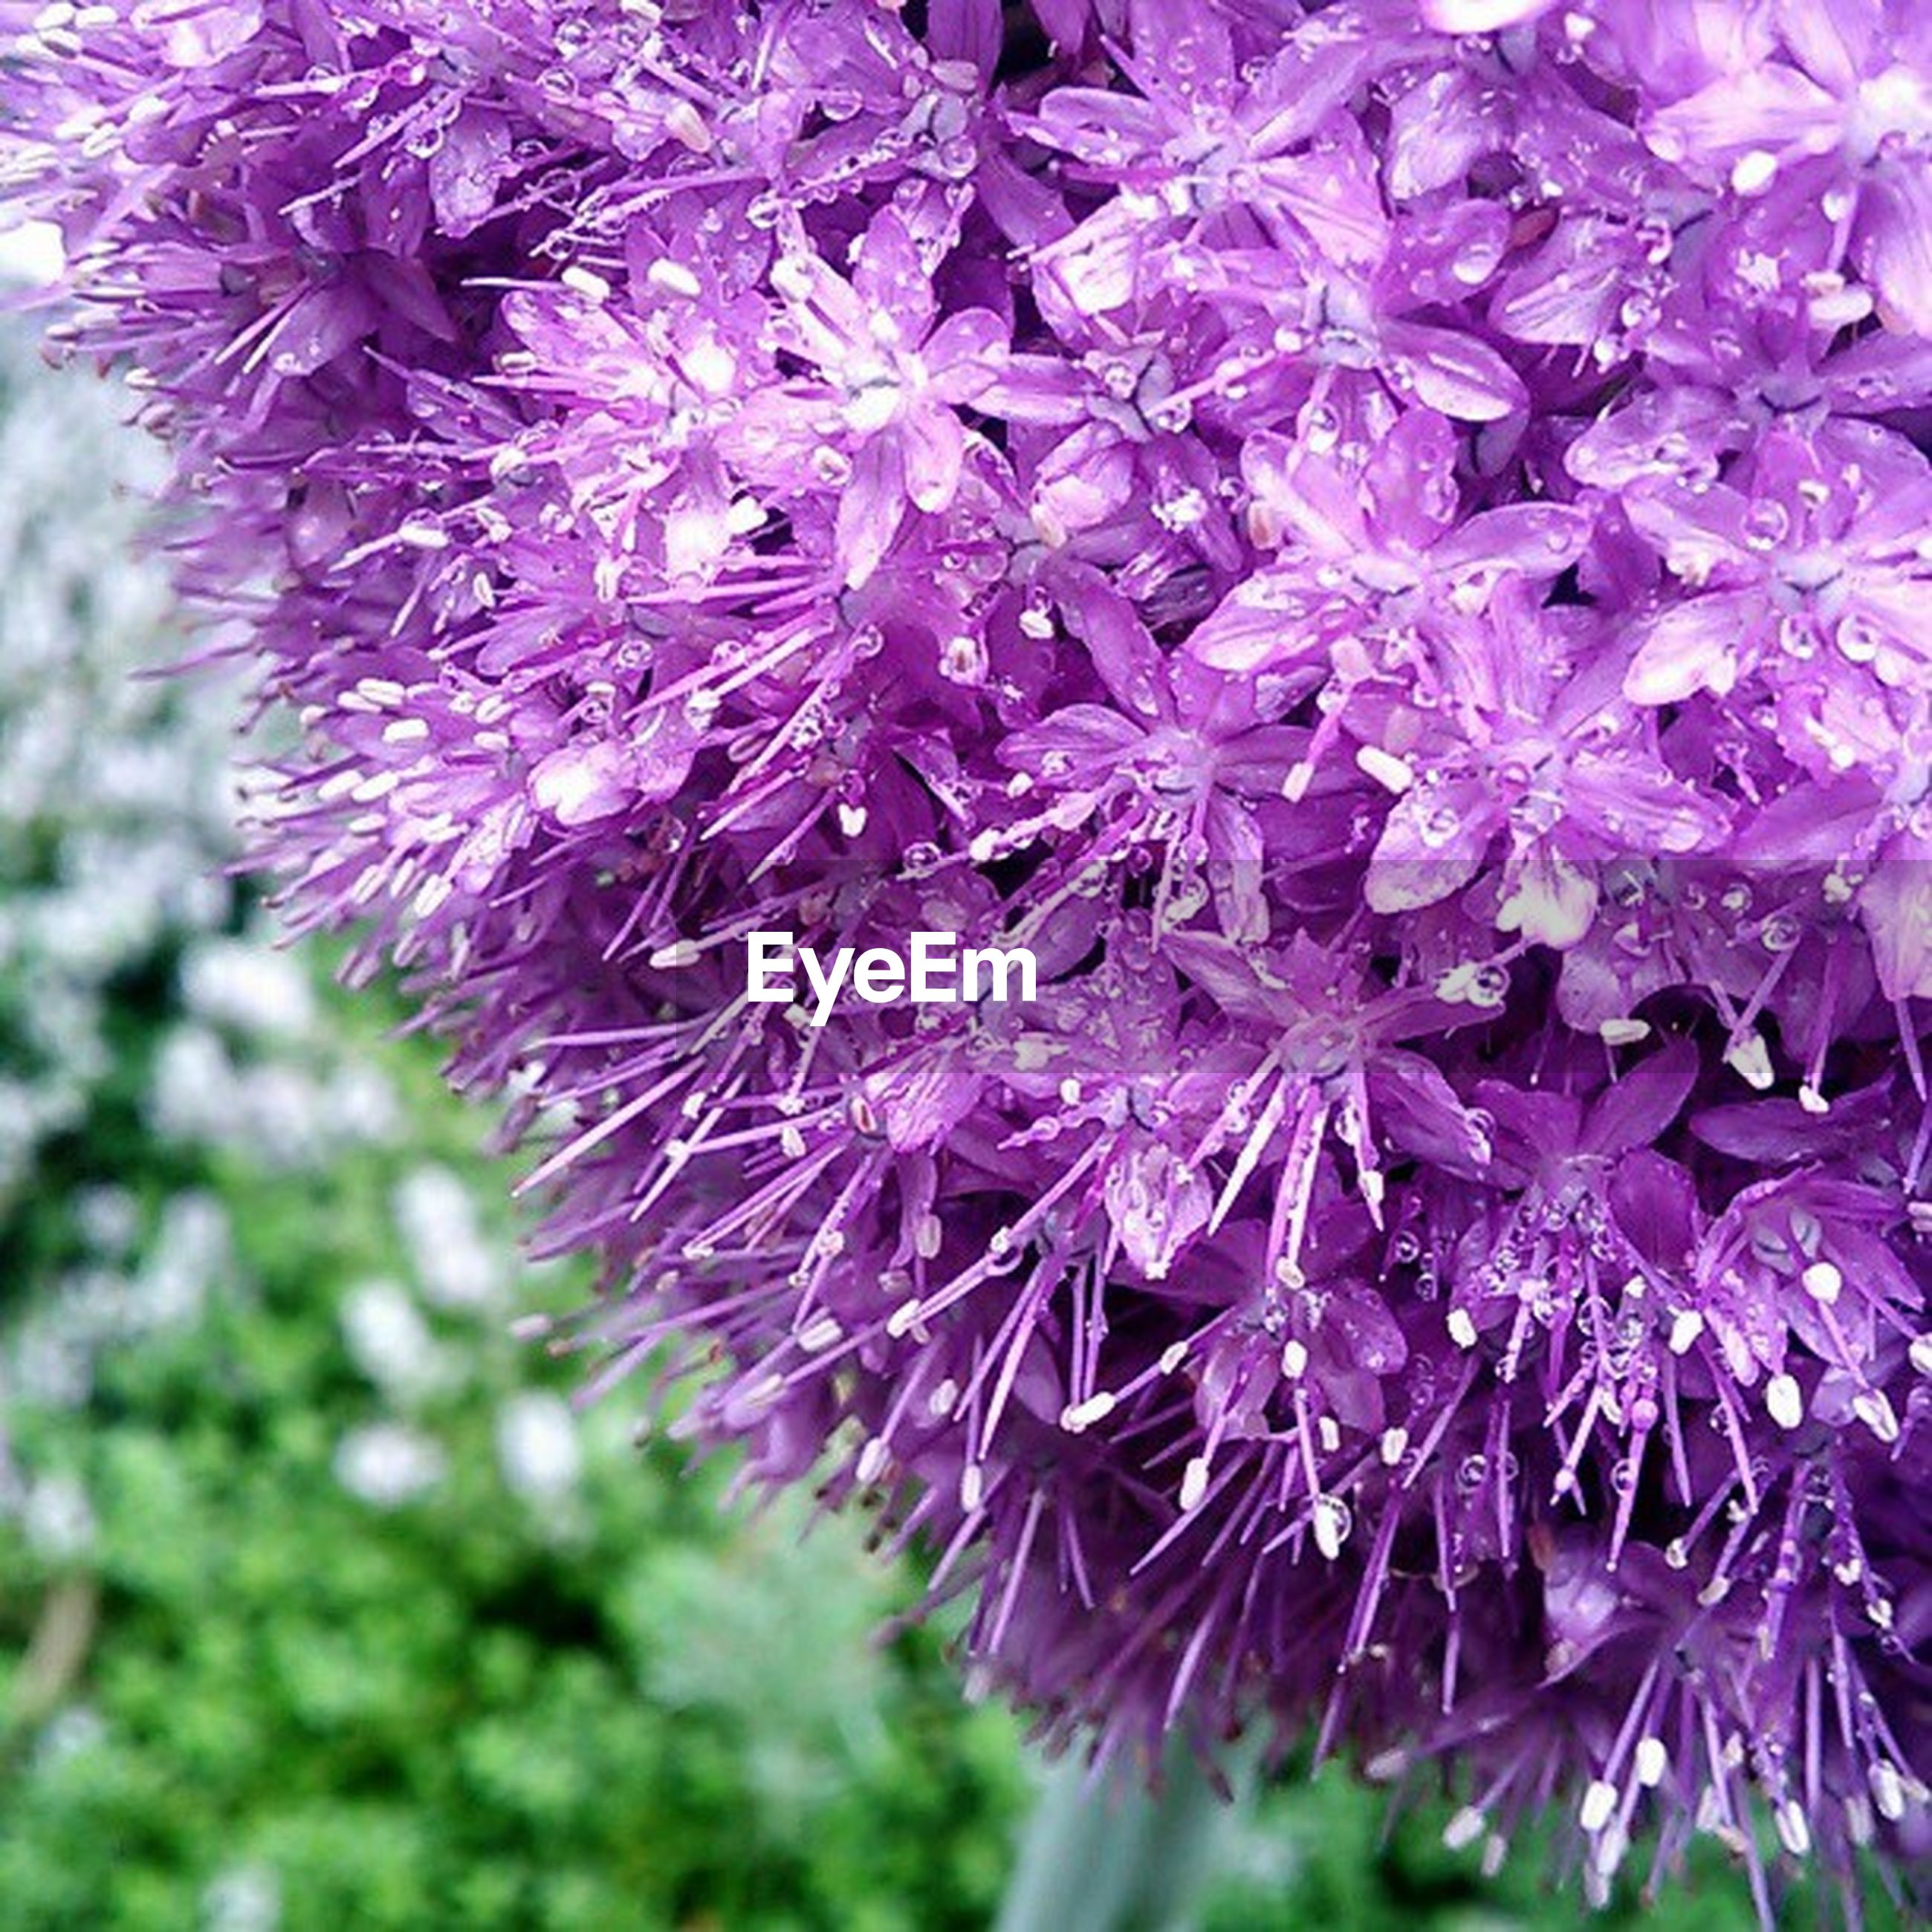 flower, growth, freshness, purple, fragility, close-up, beauty in nature, nature, focus on foreground, plant, selective focus, flower head, botany, in bloom, outdoors, blooming, blossom, no people, branch, petal